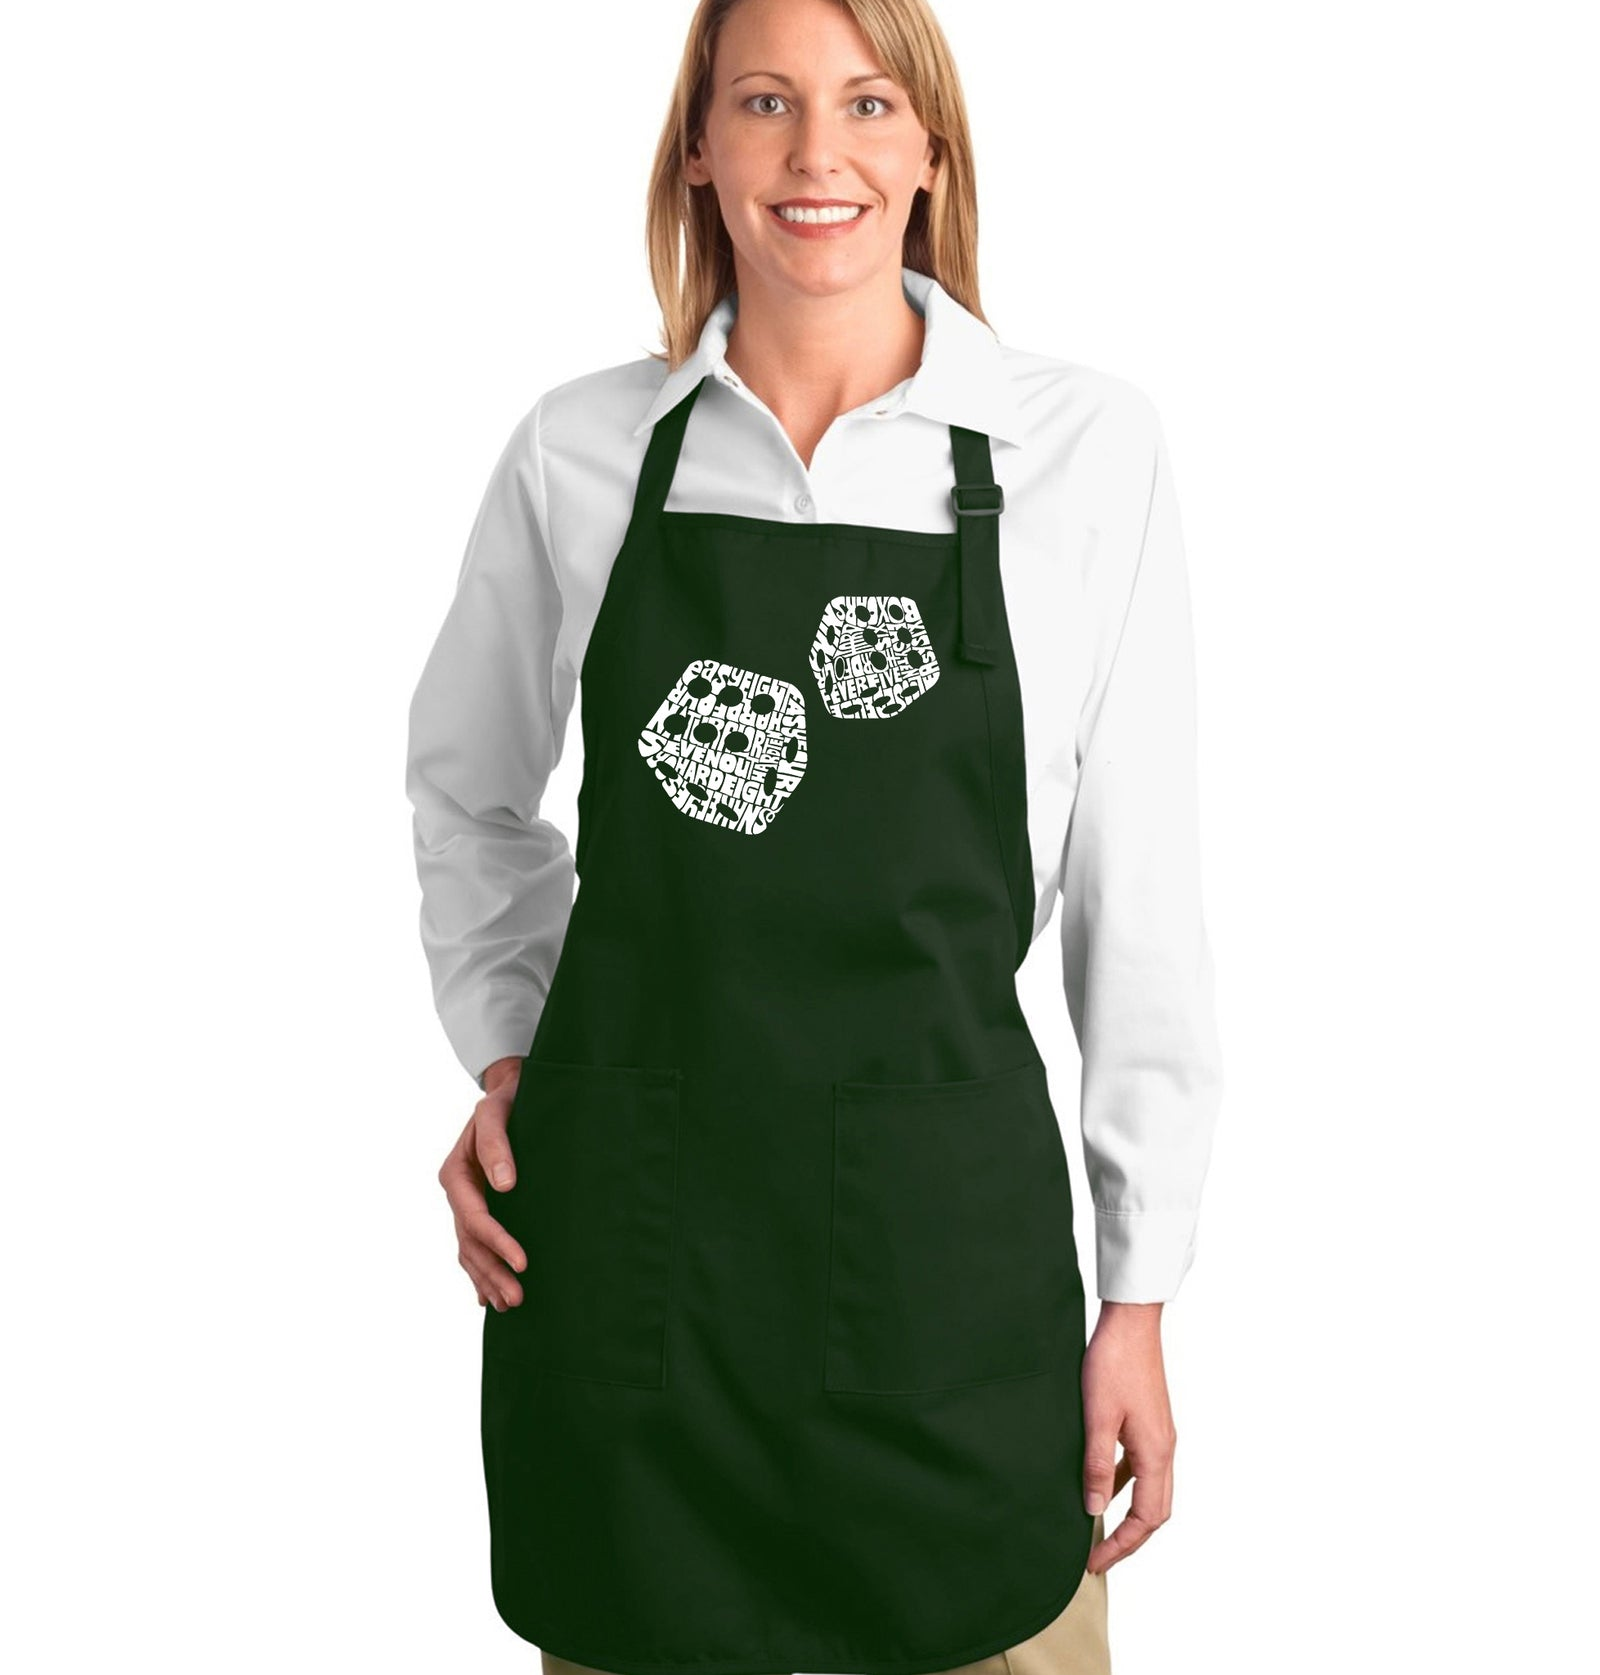 Full Length Apron - DIFFERENT ROLLS THROWN IN THE GAME OF CRAPS